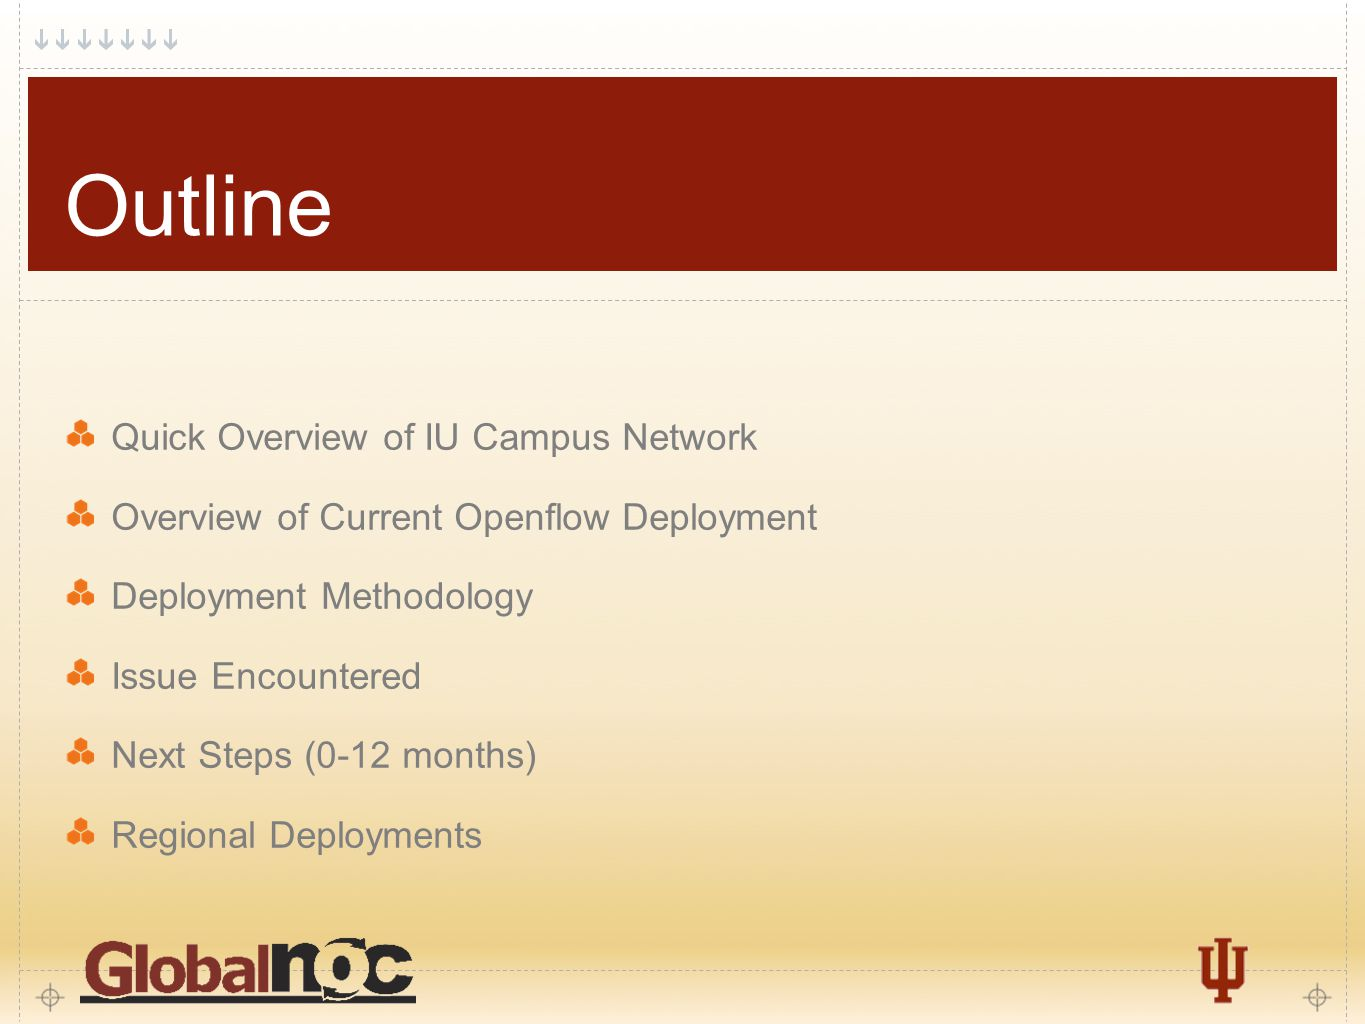 2 Outline Quick Overview of IU Campus Network Overview of Current Openflow Deployment Deployment Methodology Issue Encountered Next Steps (0-12 months) Regional Deployments